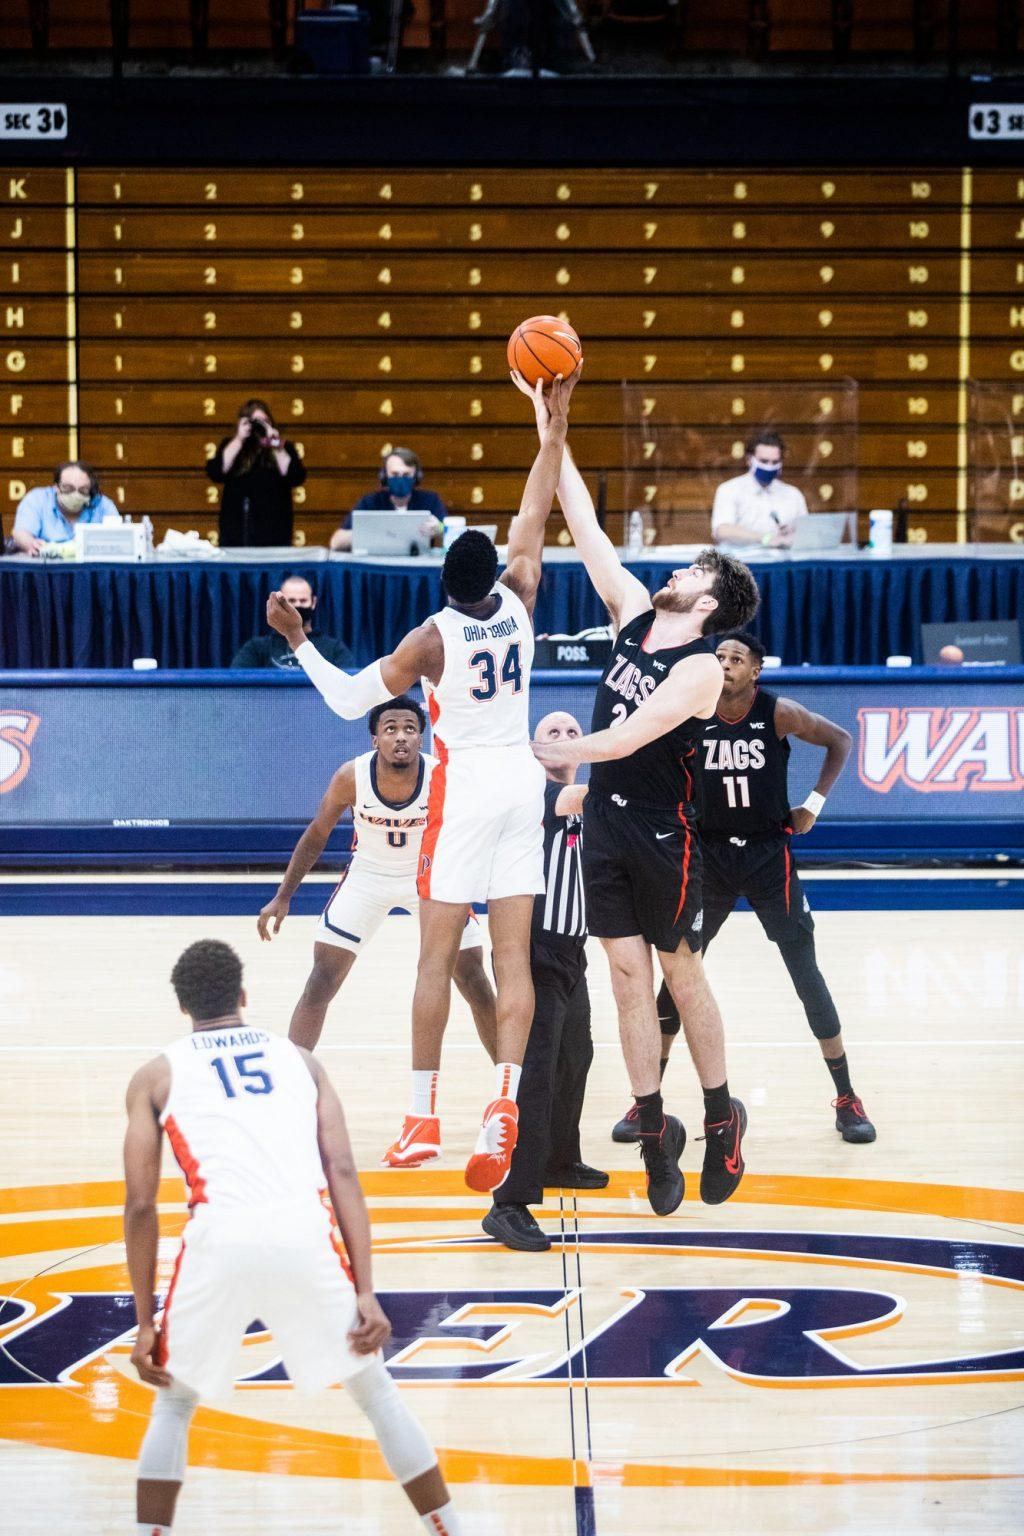 Junior center Victor Ohia Obioha wins the tipoff against Gonzaga's Drew Timme at the beginning of Saturday's game in Firestone Fieldhouse. Pepperdine got off to a hot start in the game, leading 16-7 after the first five minutes.